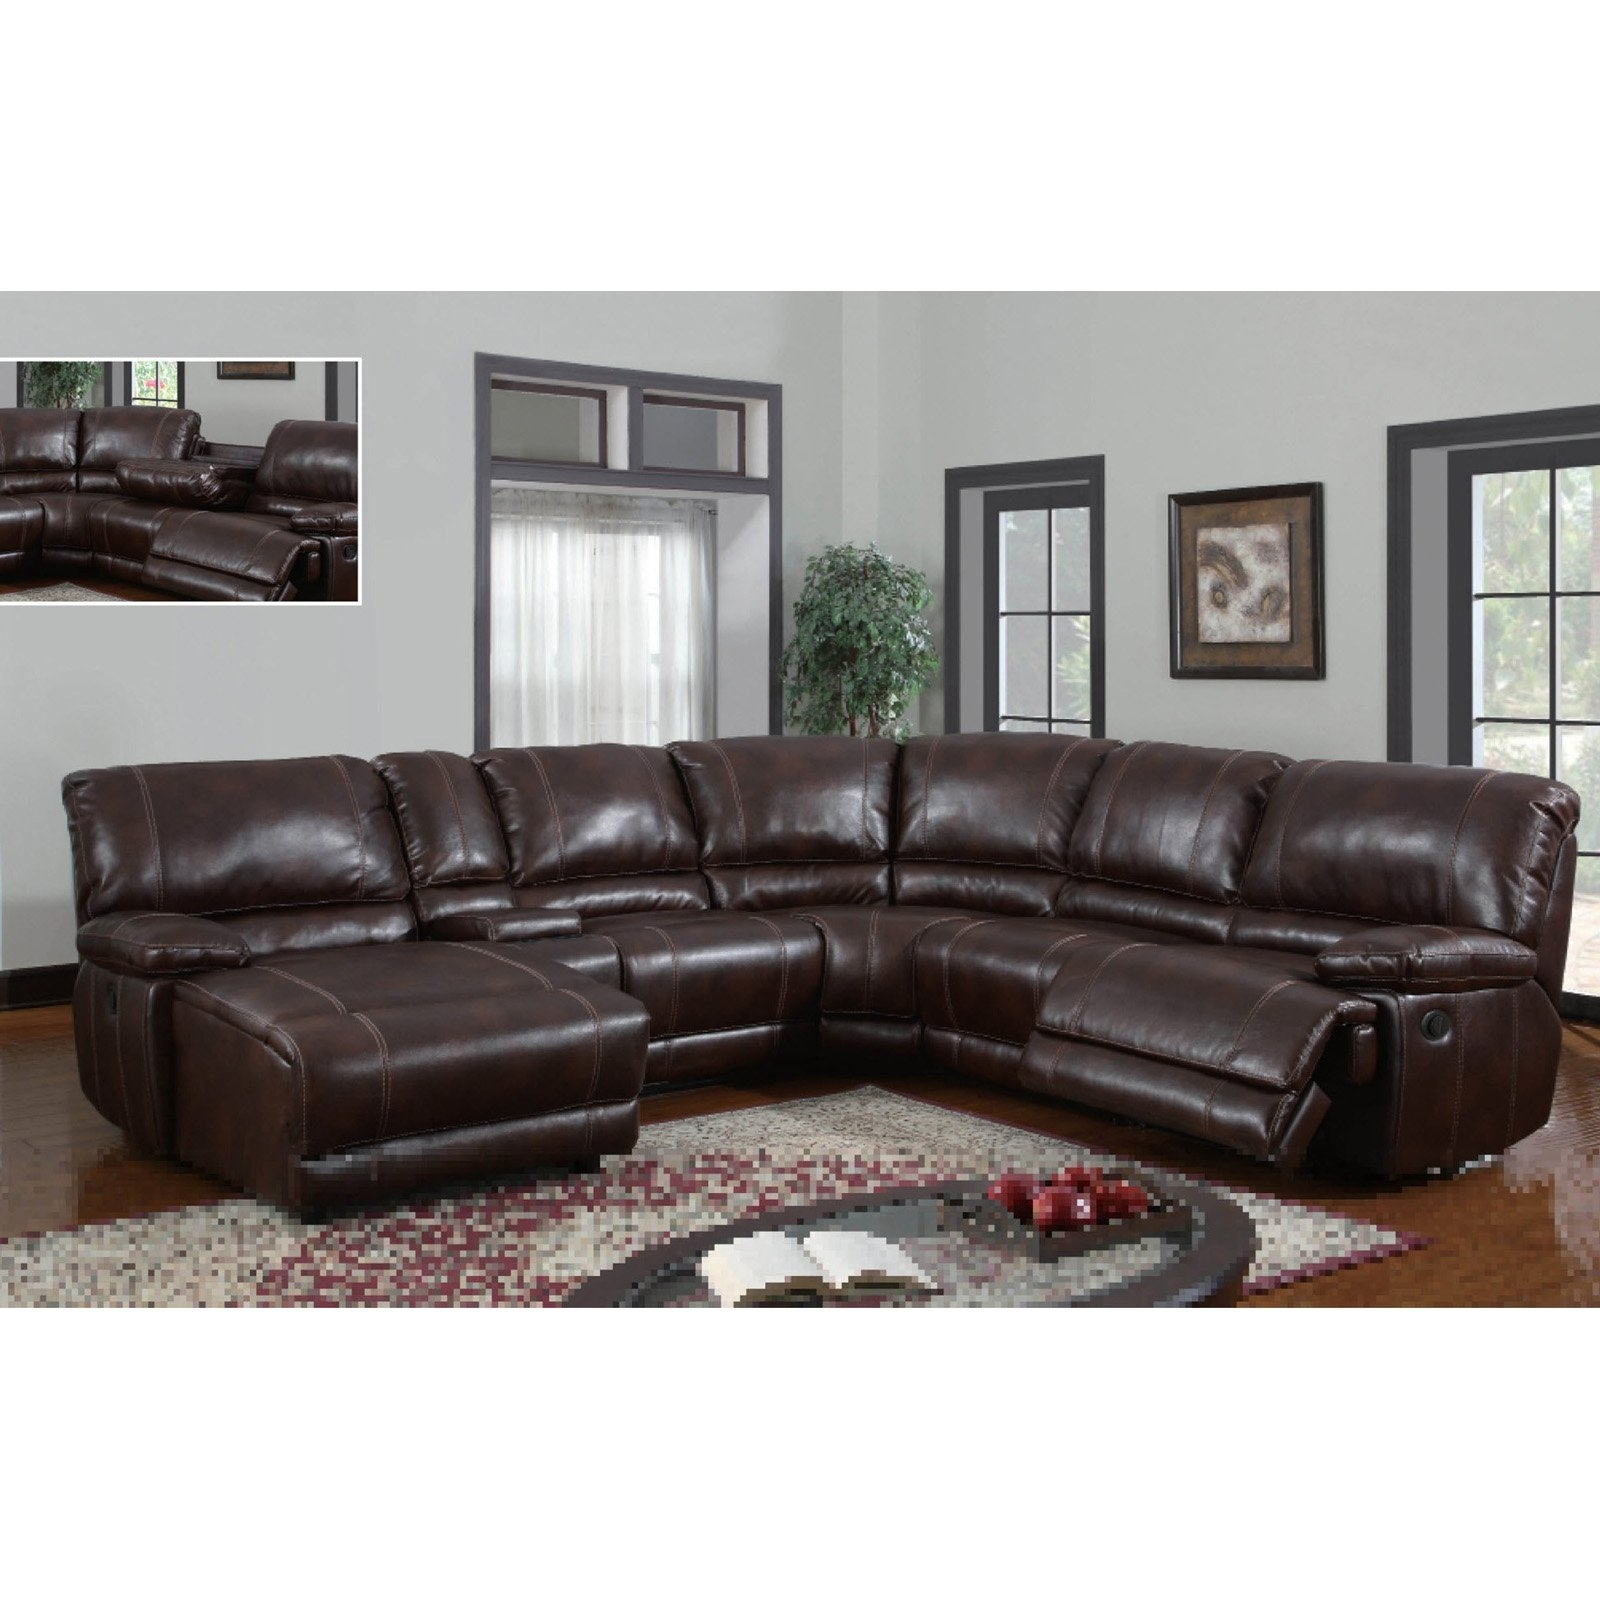 Sectional Sofas With Power Recliners With Regard To 2018 Leather Sectional Sofa With Power Recliner 11 With Leather (View 16 of 20)